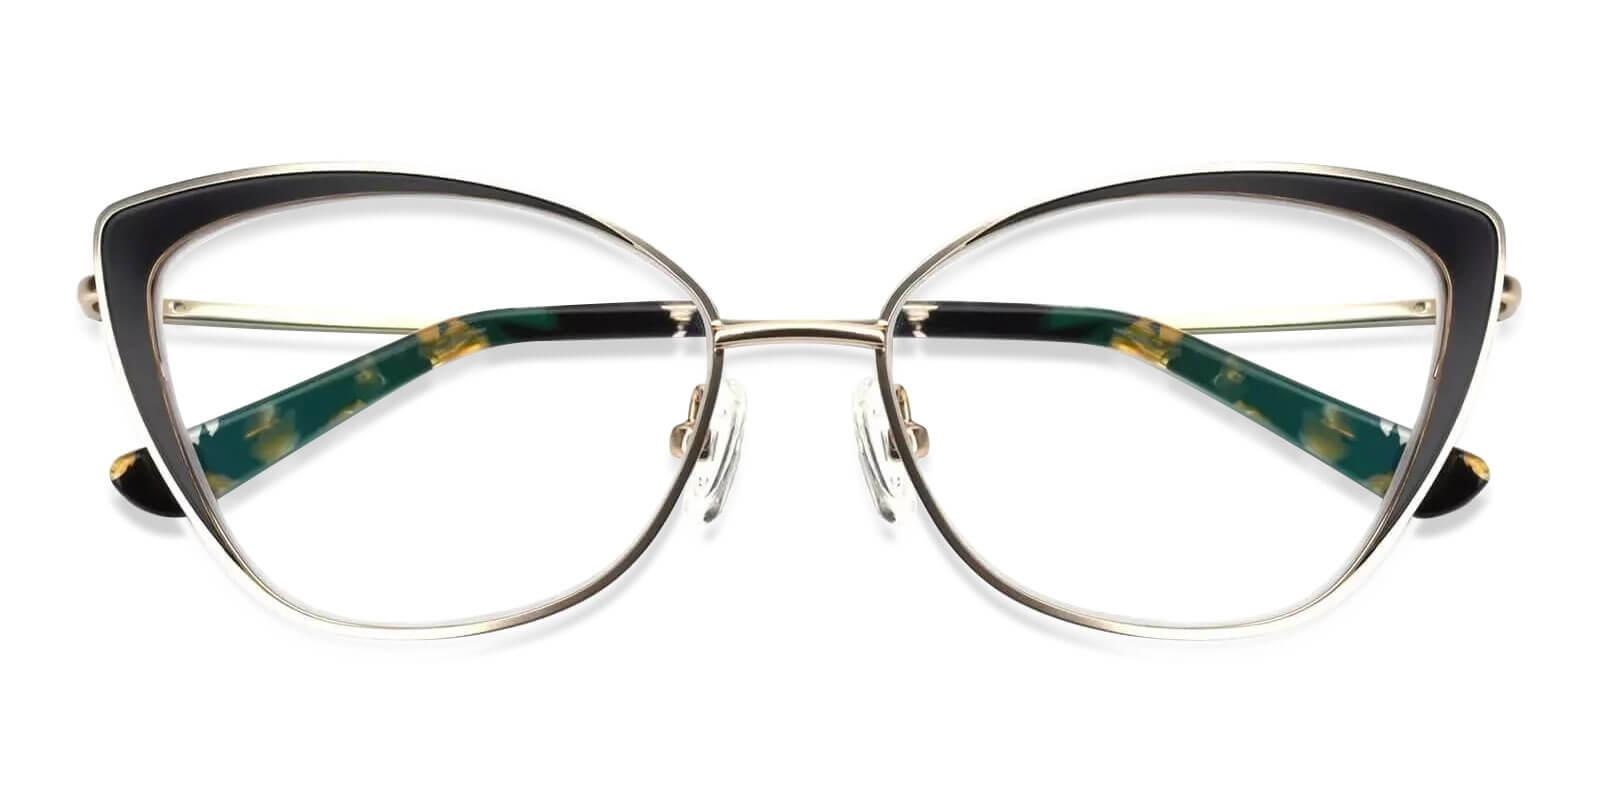 Paisley Gold Metal SpringHinges , Eyeglasses , NosePads Frames from ABBE Glasses